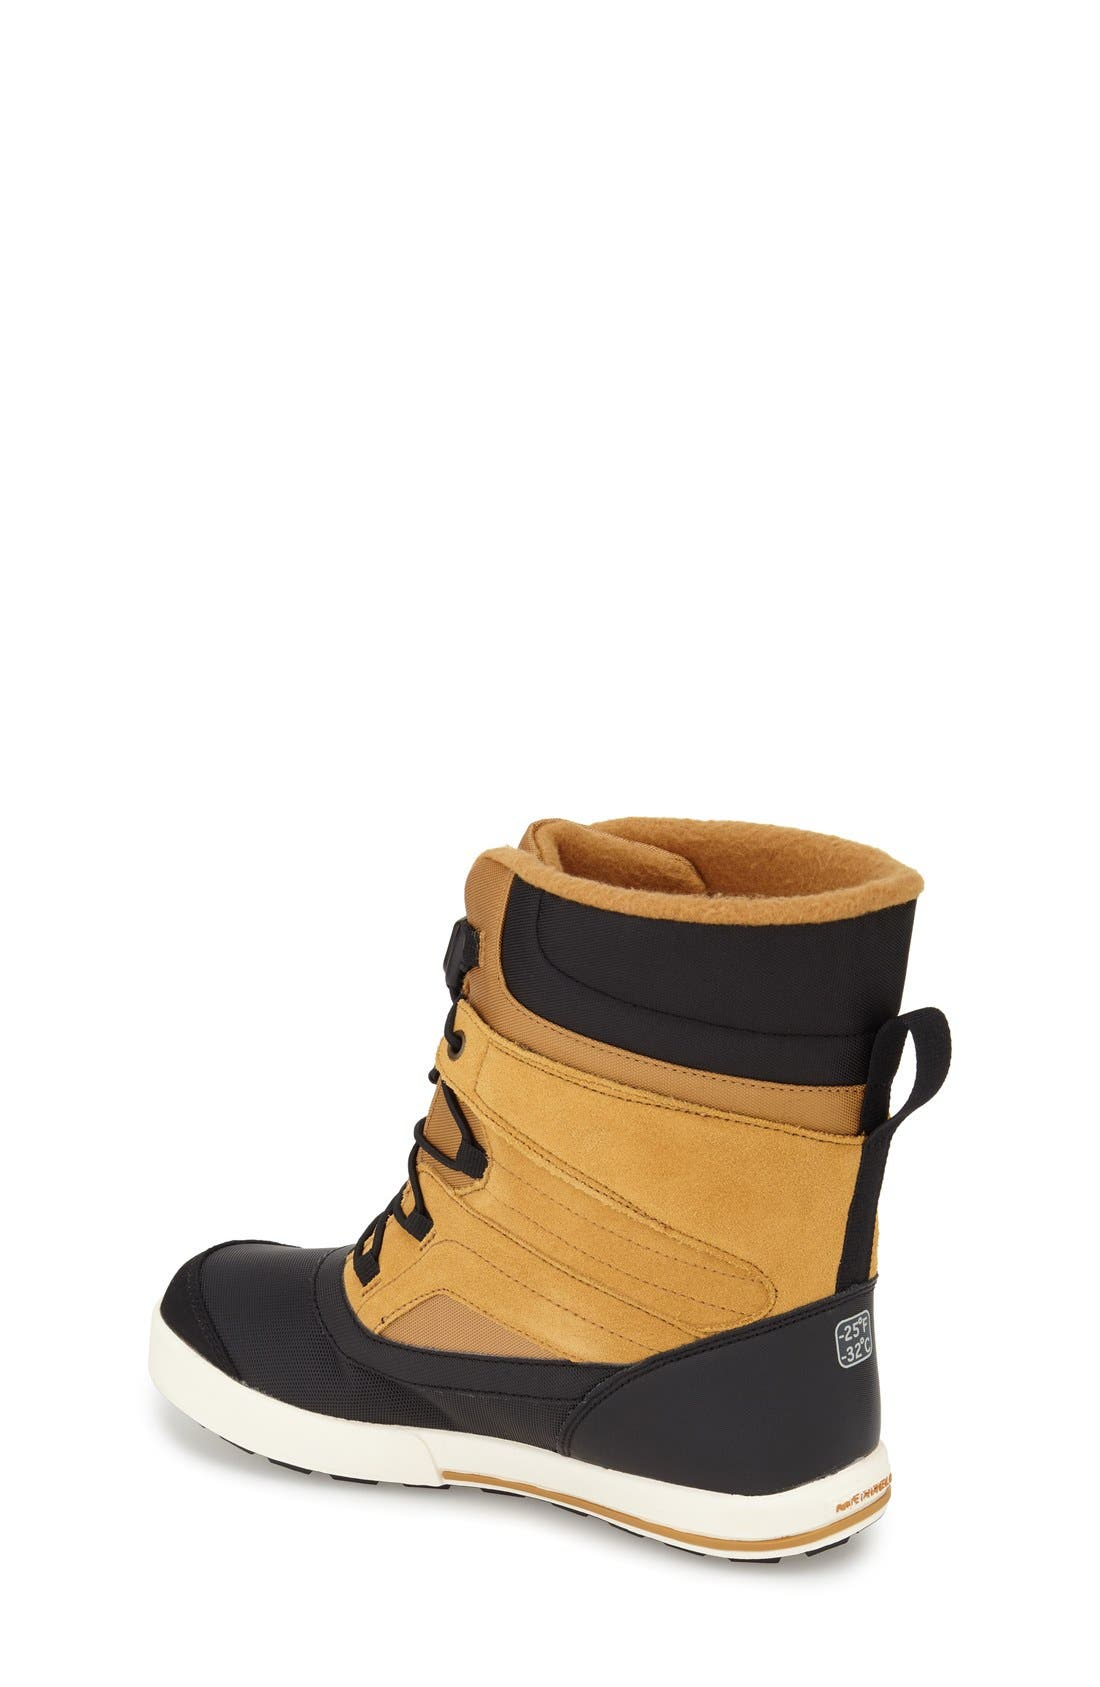 'Snow Bank 2' Waterproof Boot,                             Alternate thumbnail 2, color,                             Wheat/ Black Leather